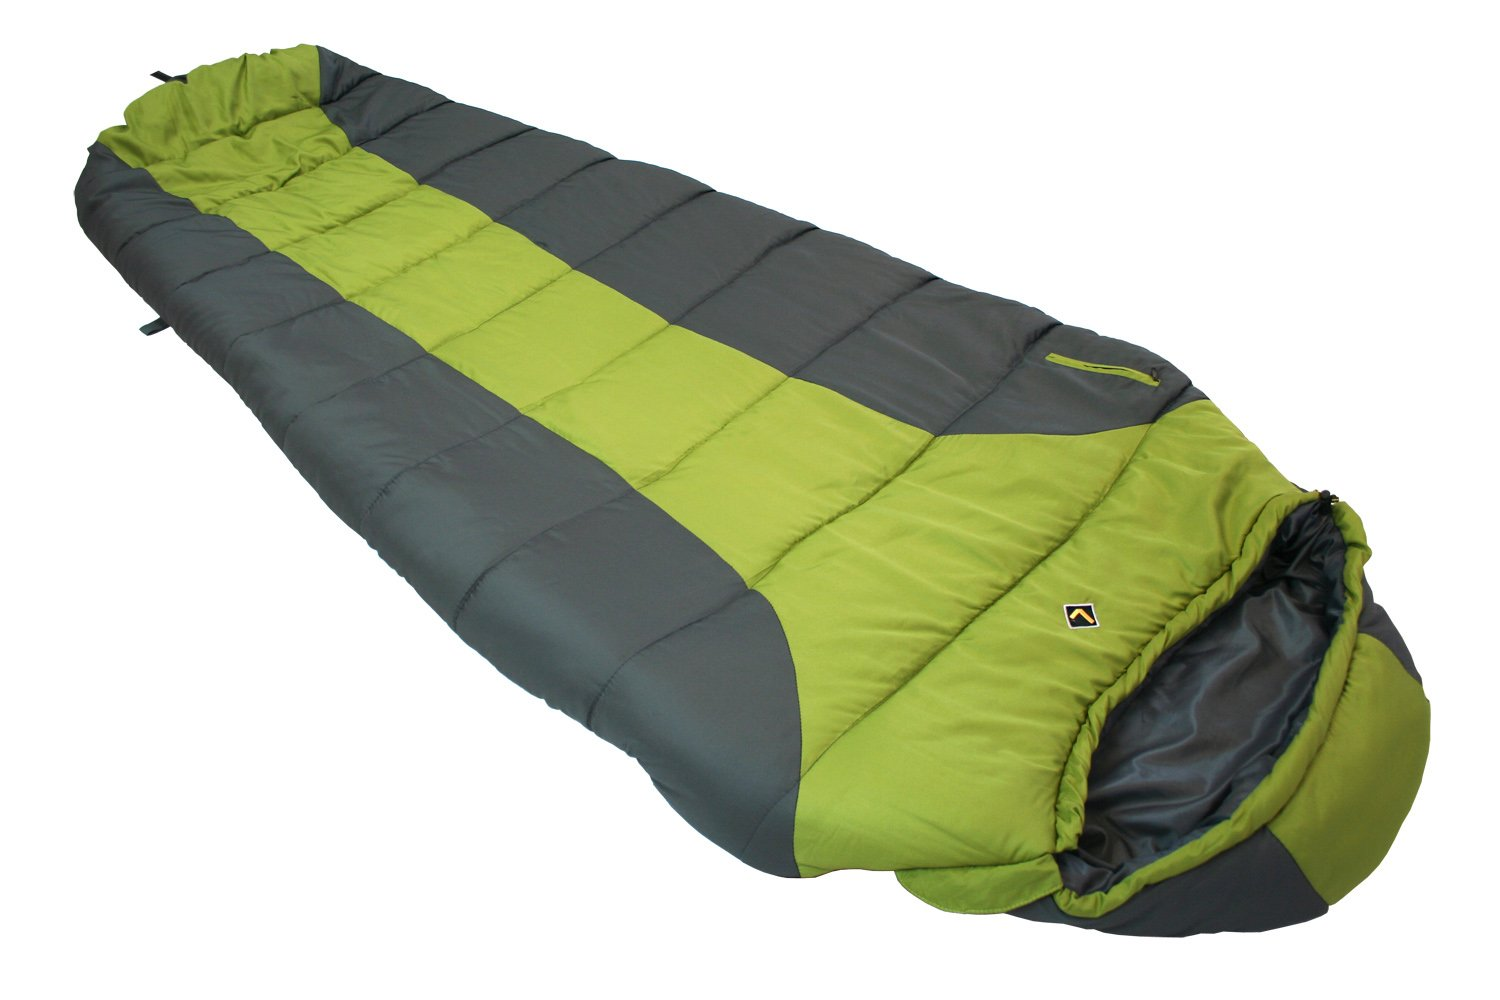 Ledge Sports X-Lite +40 F Degree XL Oversize Ultra Light Design, Compact Sleeping Bag (88 X 36 X 26)